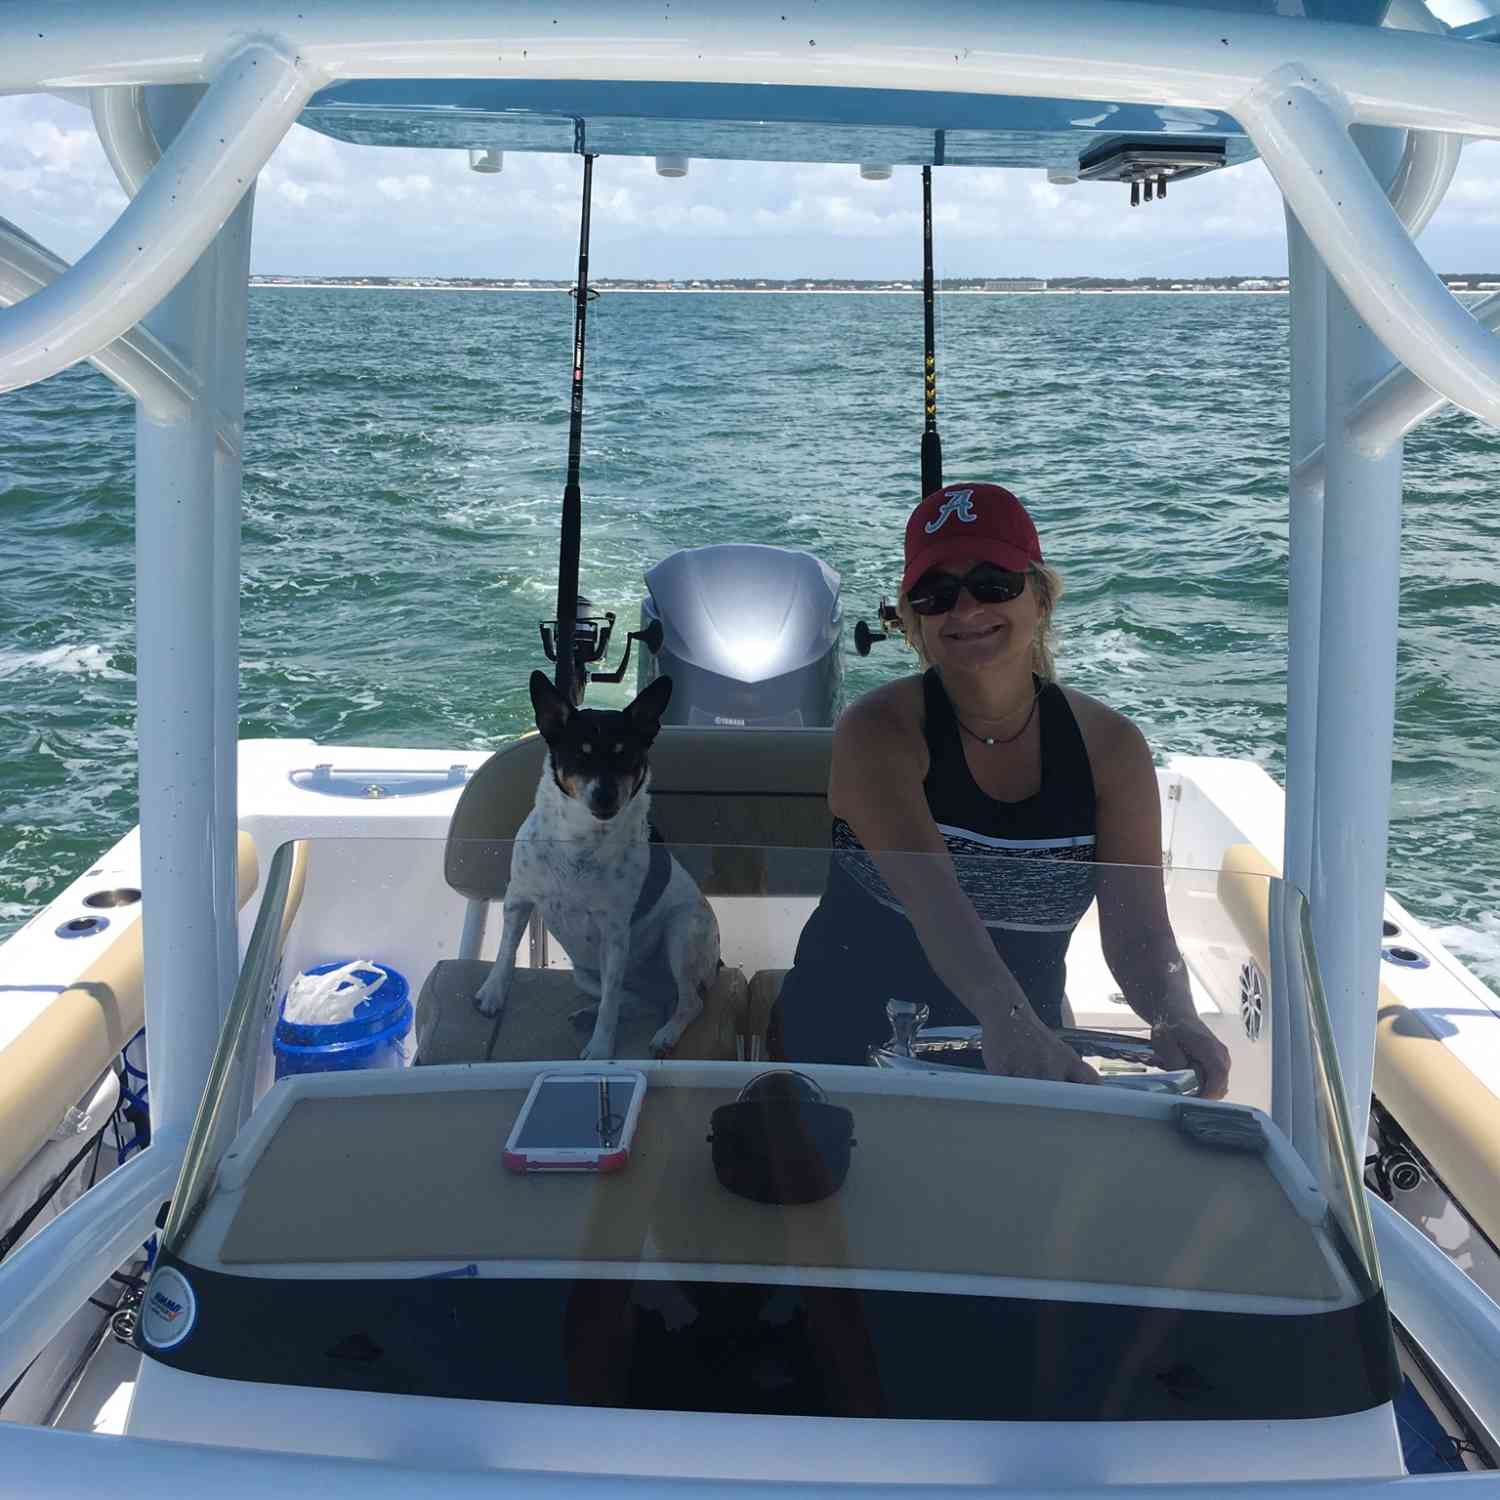 Title: Teresa and Abby enjoy the ride - On board their Sportsman Open 232 Center Console - Location: Mexico beach fla. Participating in the Photo Contest #SportsmanJuly2018